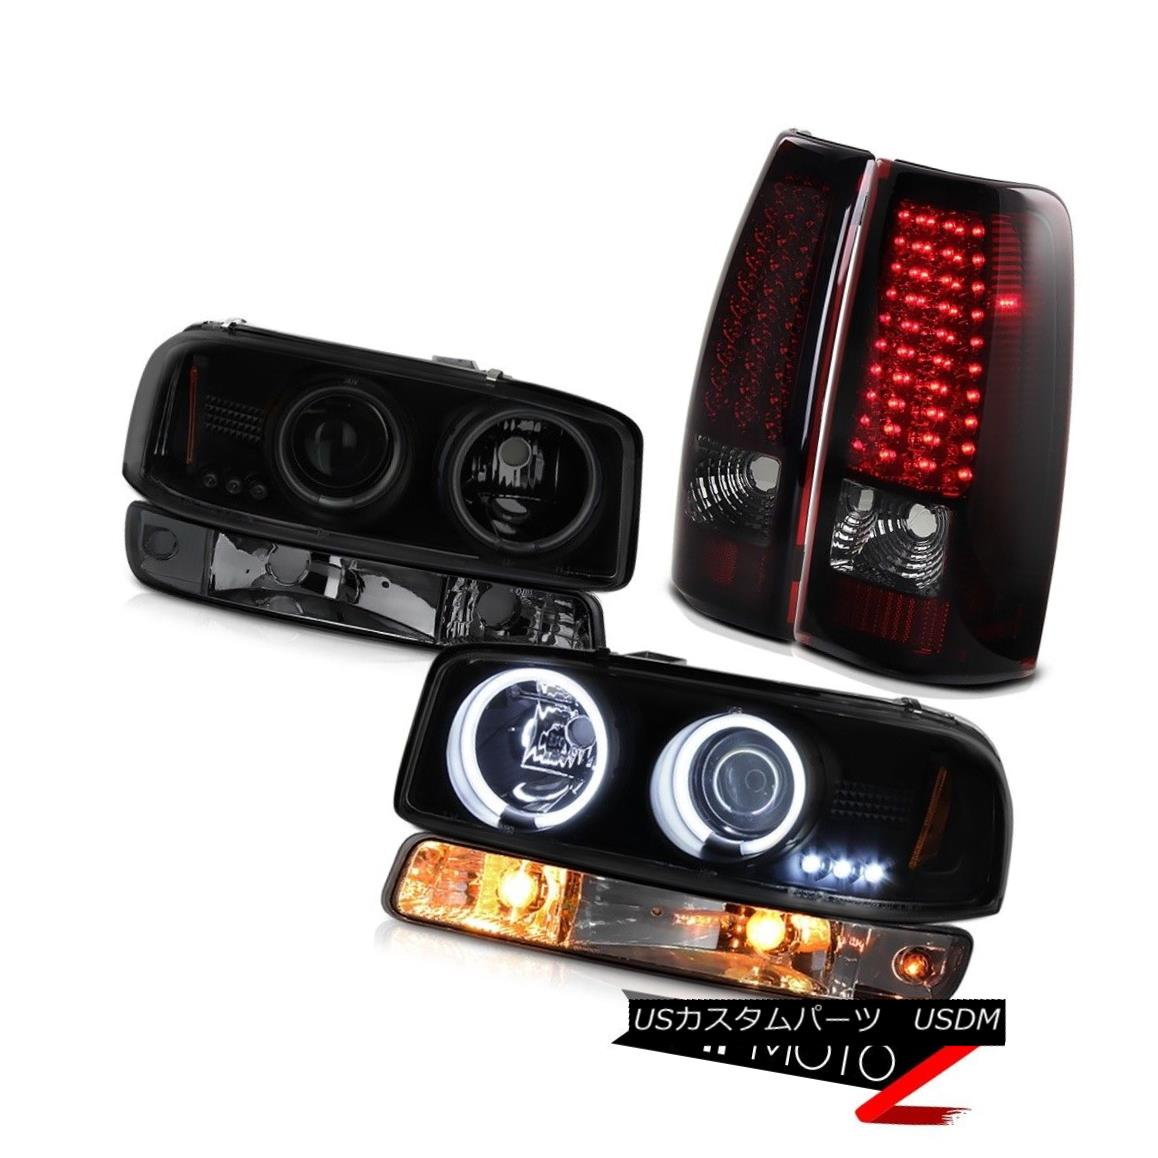 テールライト 99 00 01 02 GMC Sierra Smoked red led tail lights parking light ccfl Headlights 99 00 01 02 GMC SierraスモークレッドLEDテールライトパーキングライトccflヘッドライト